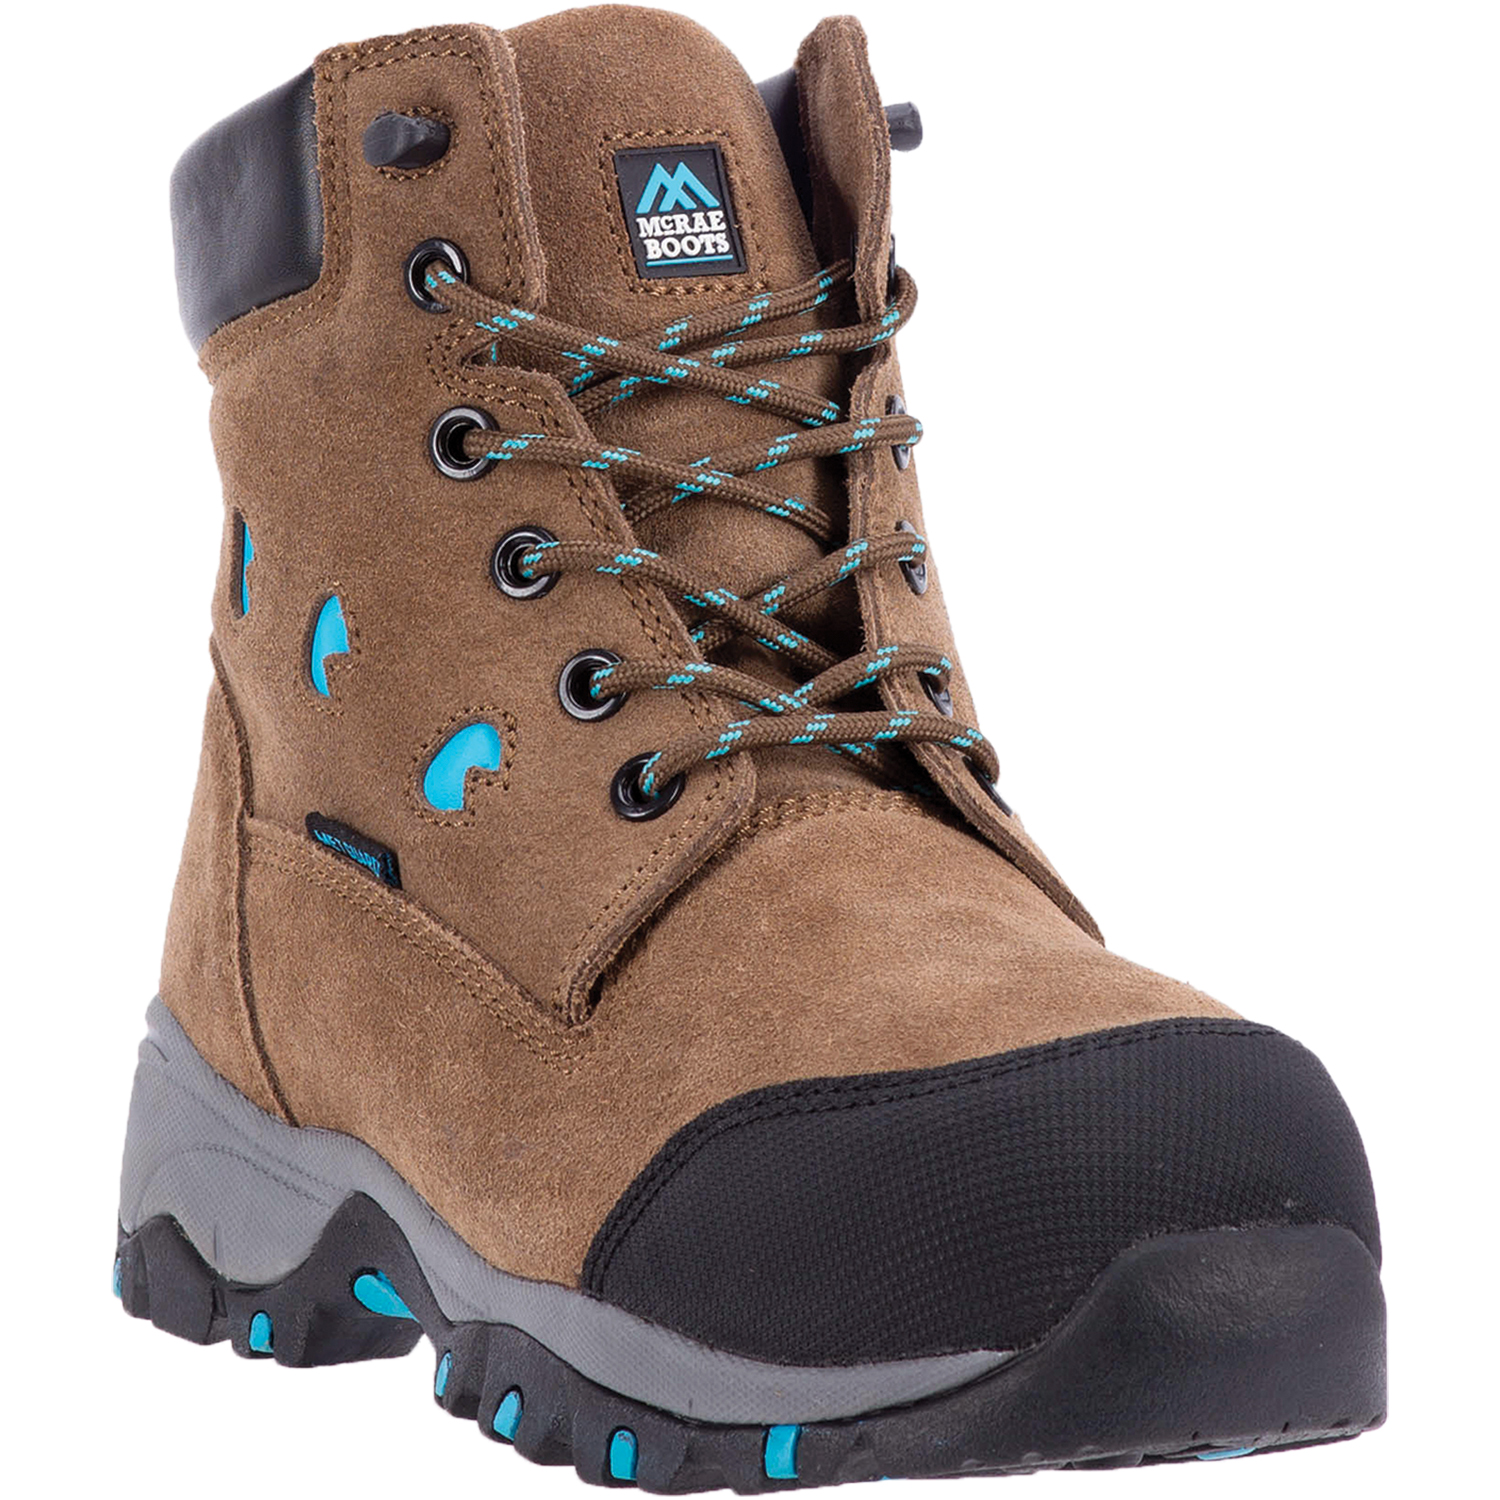 Recalled safety boot (MR47616)